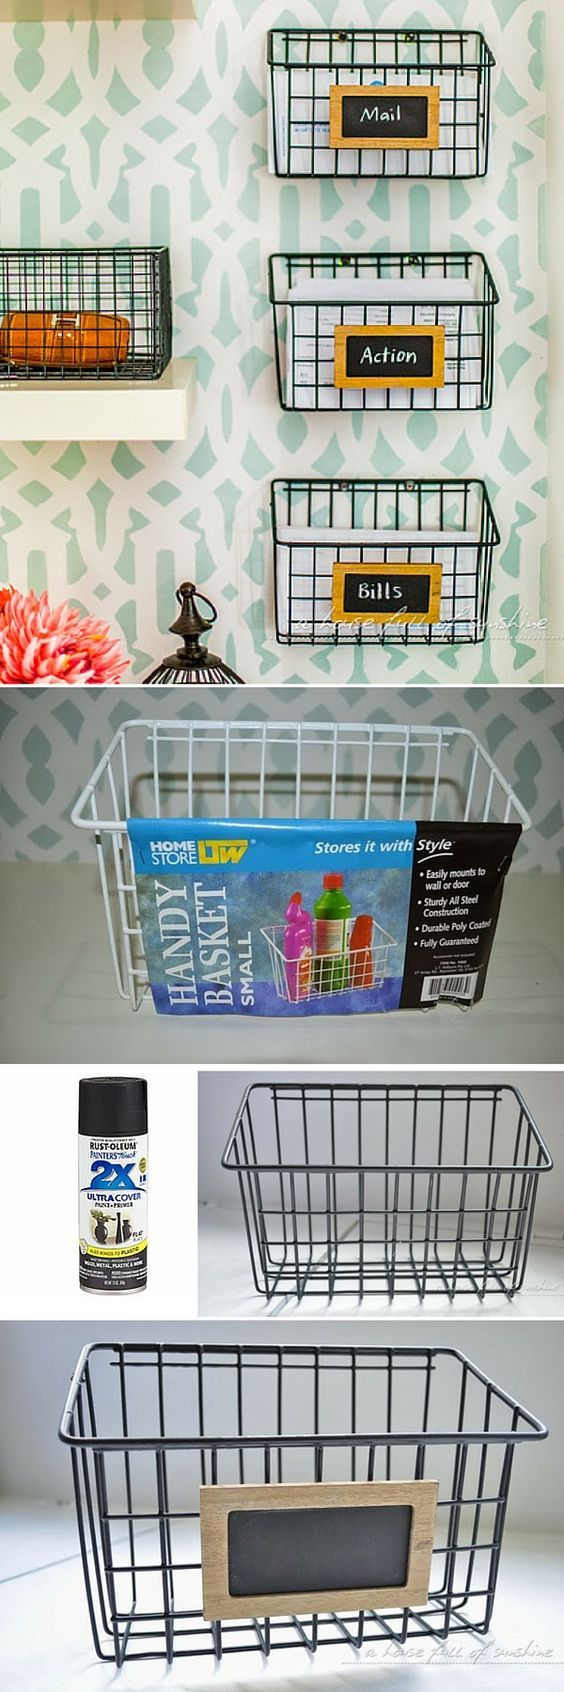 Check out the tutorial: #DIY Wire Mail Baskets #crafts #decor                                                                                                                                                      More